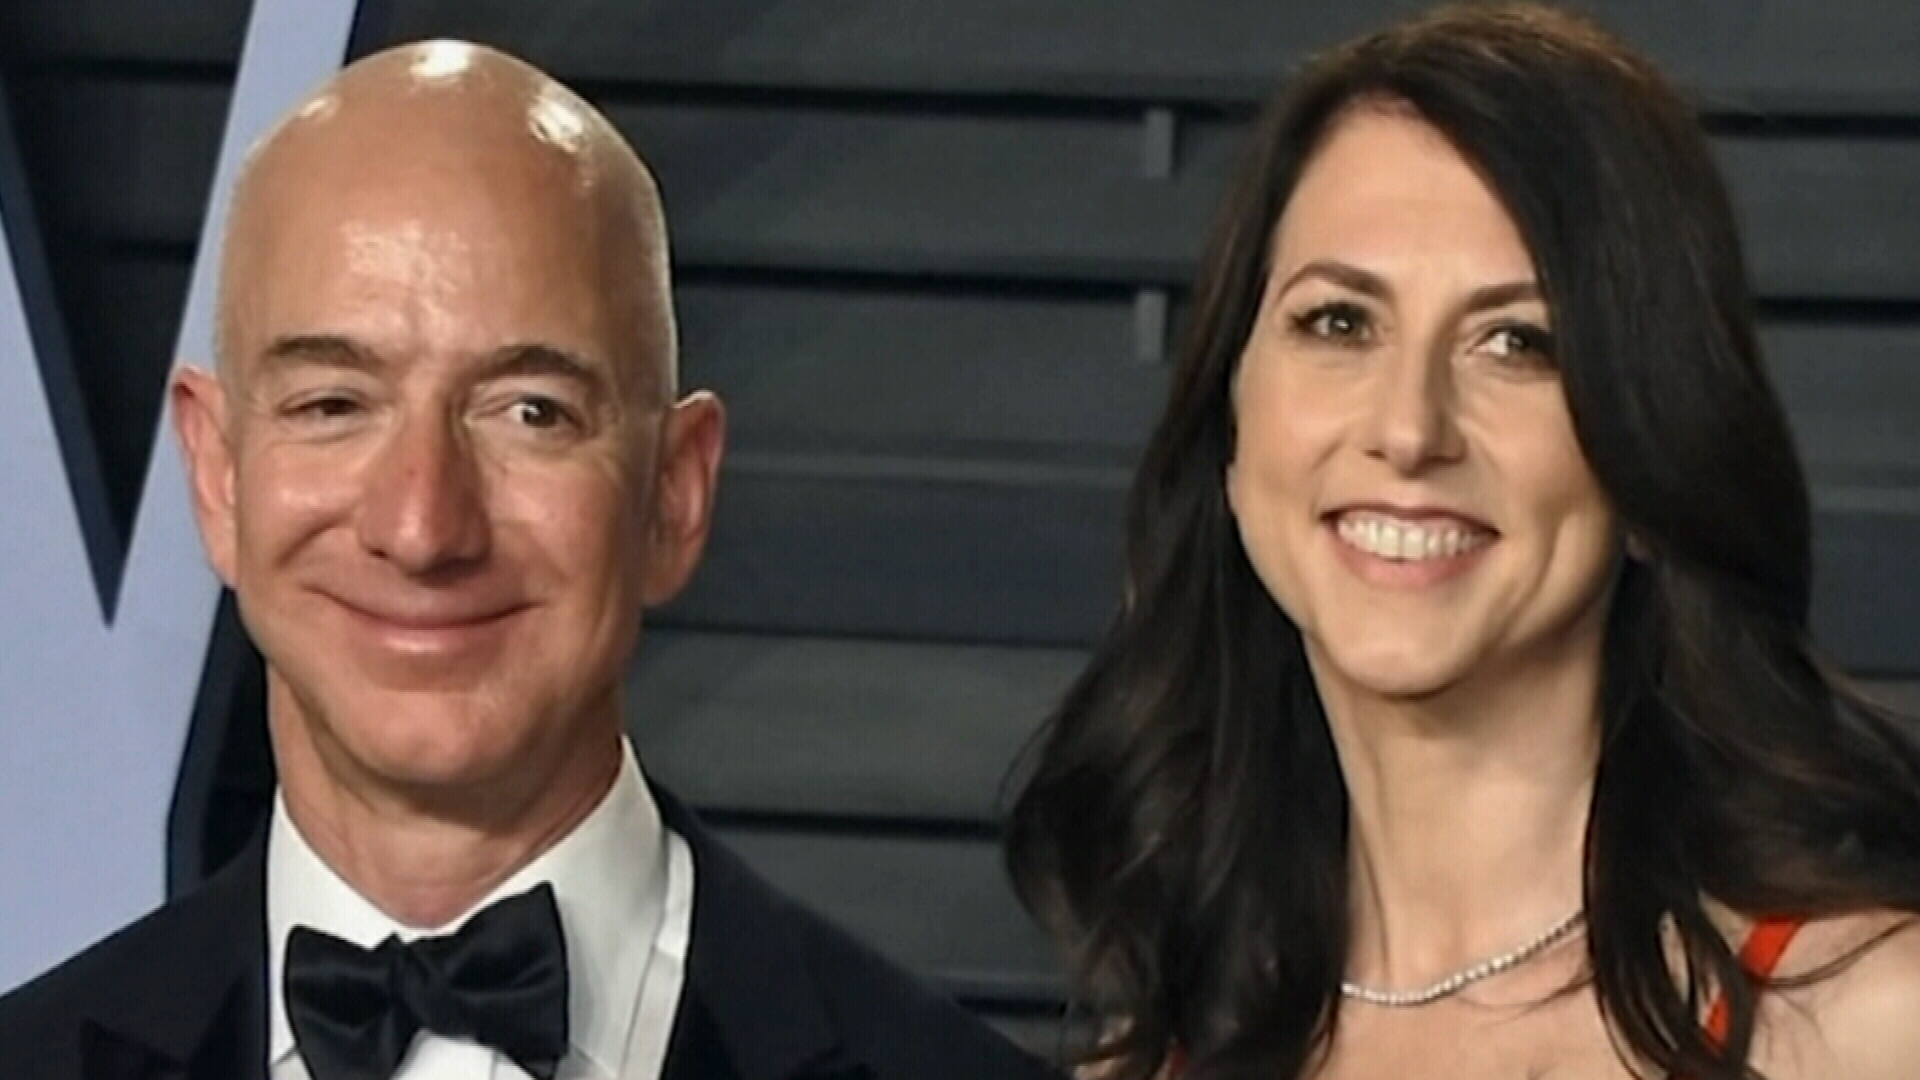 Amazon's Jeff Bezos pledges $10bn to save earth's environment